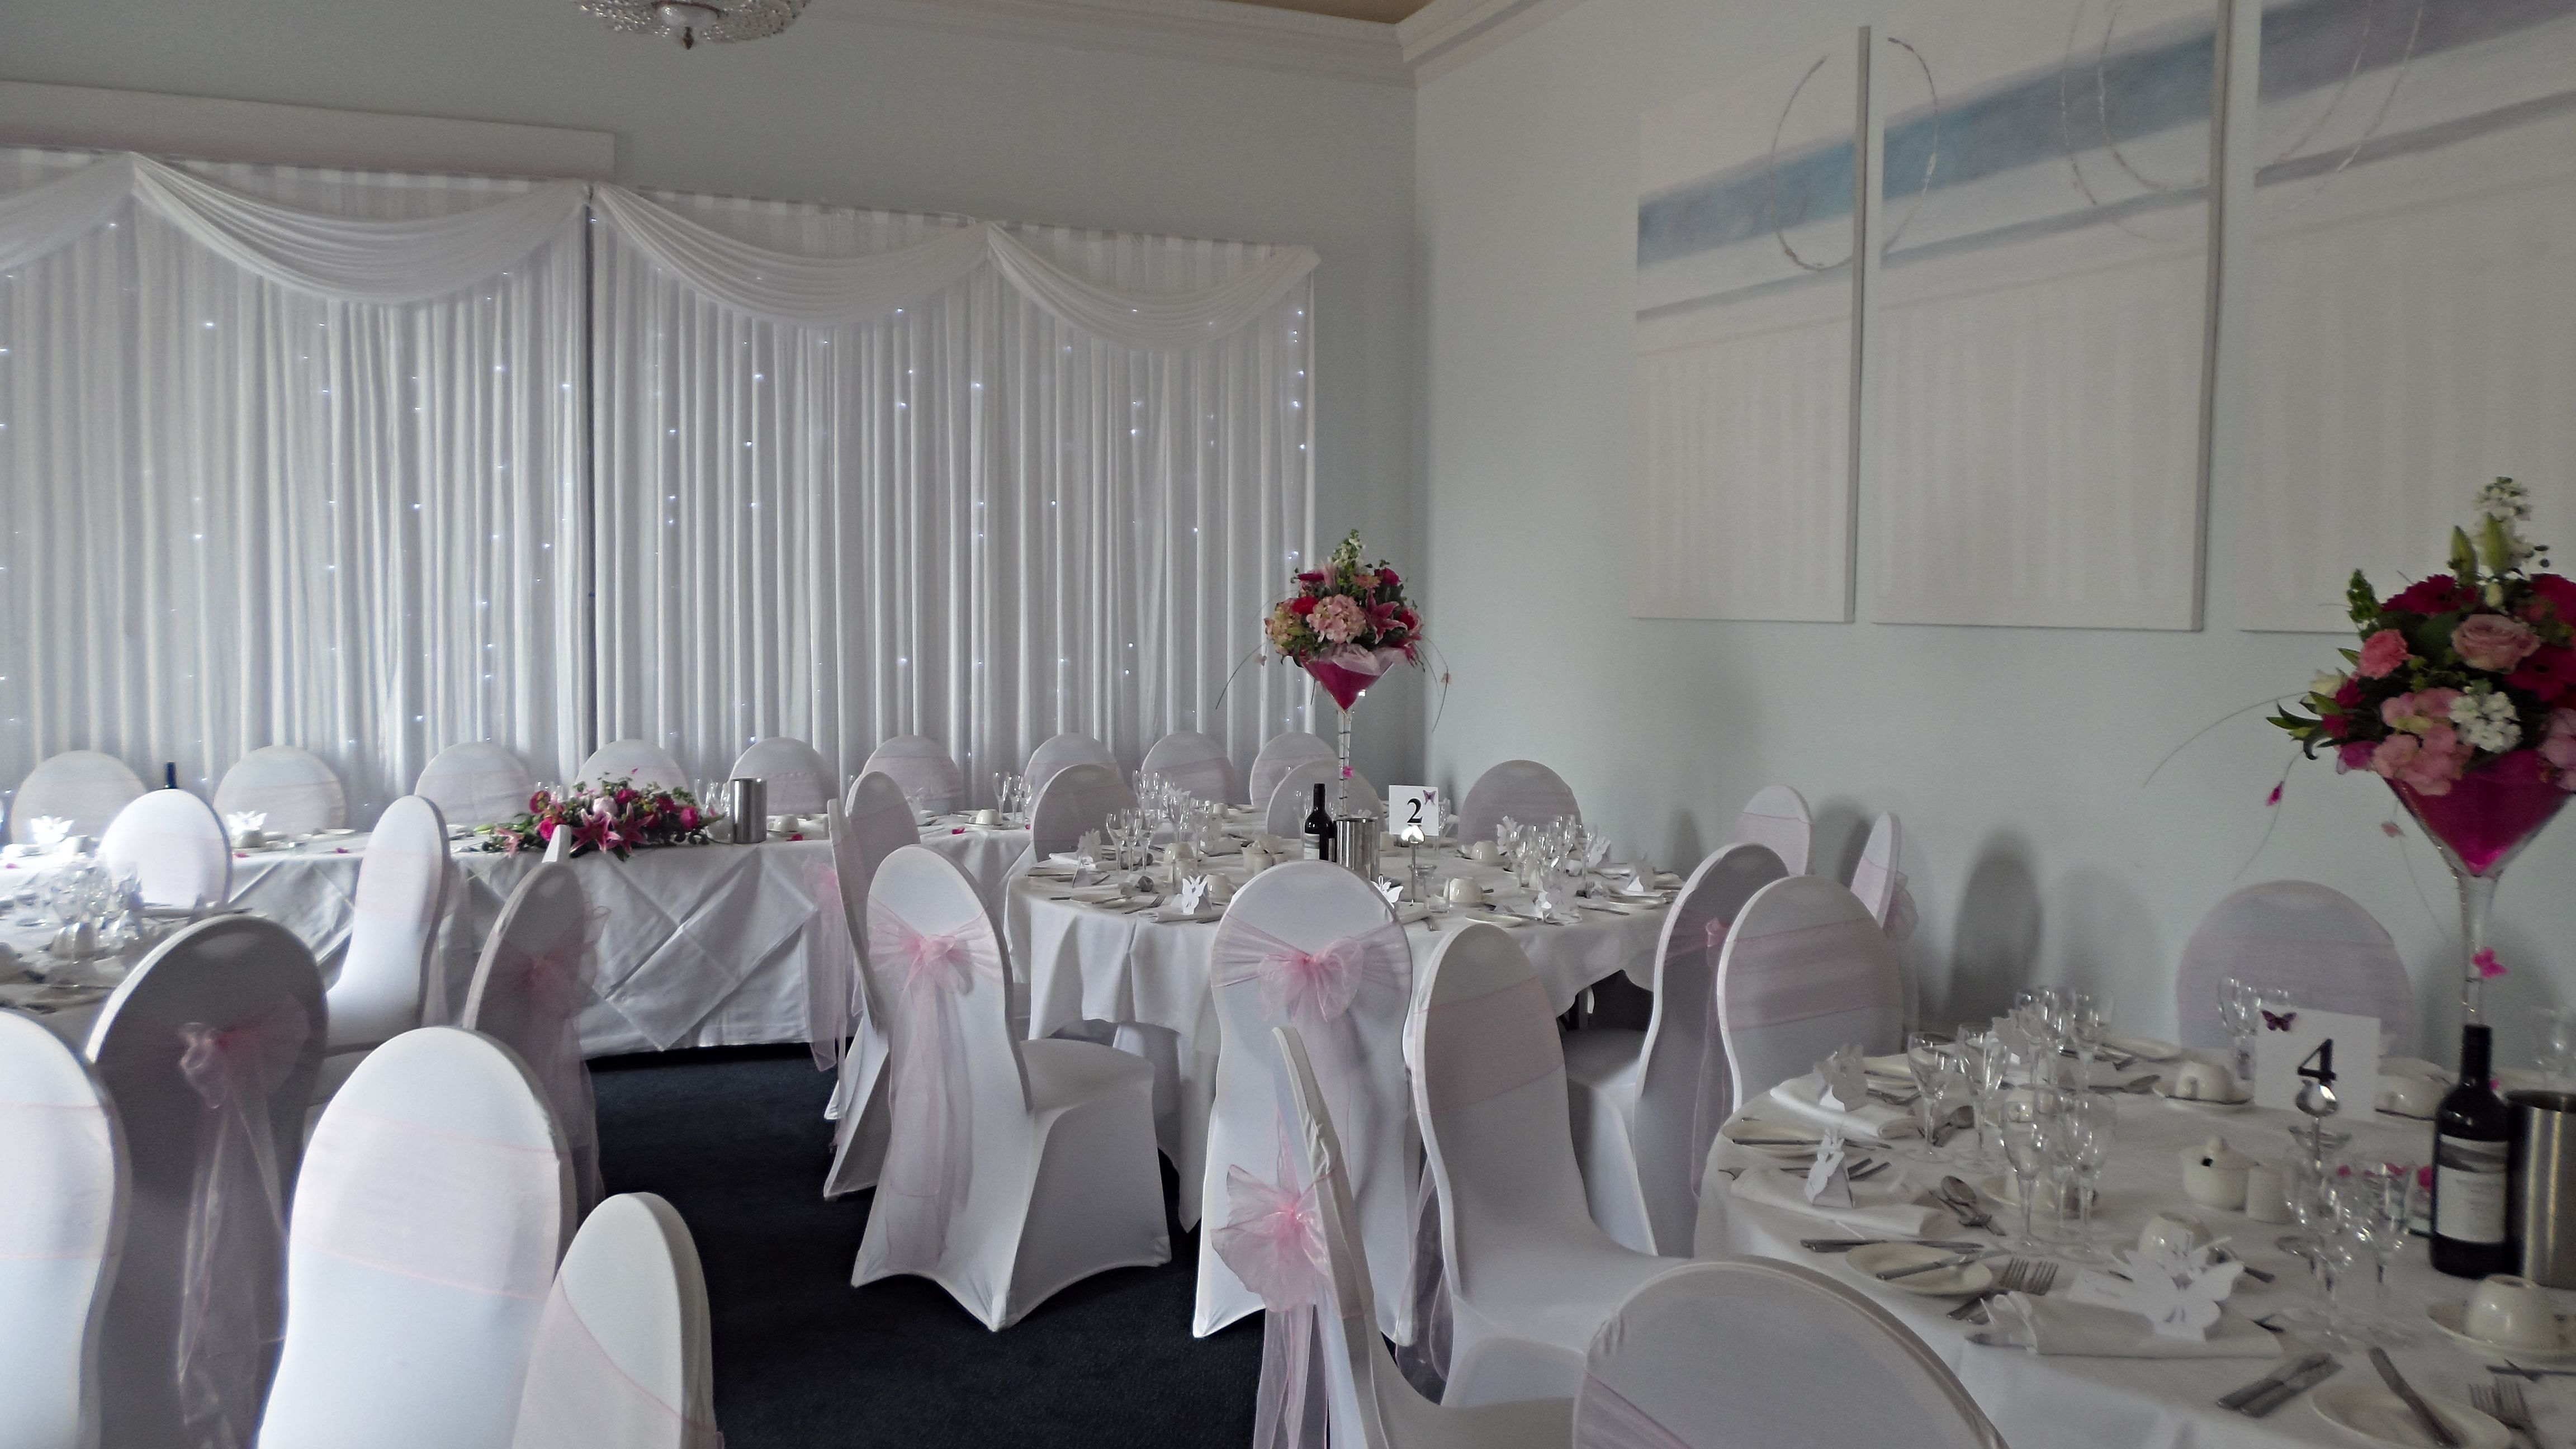 Starlight Wedding Backdrop With Spandex Wedding Chair Covers And Baby Pink Sashes By Jda Hire Www Jdahire Co Uk Wedding Chairs Wedding Set Up Wedding Sets